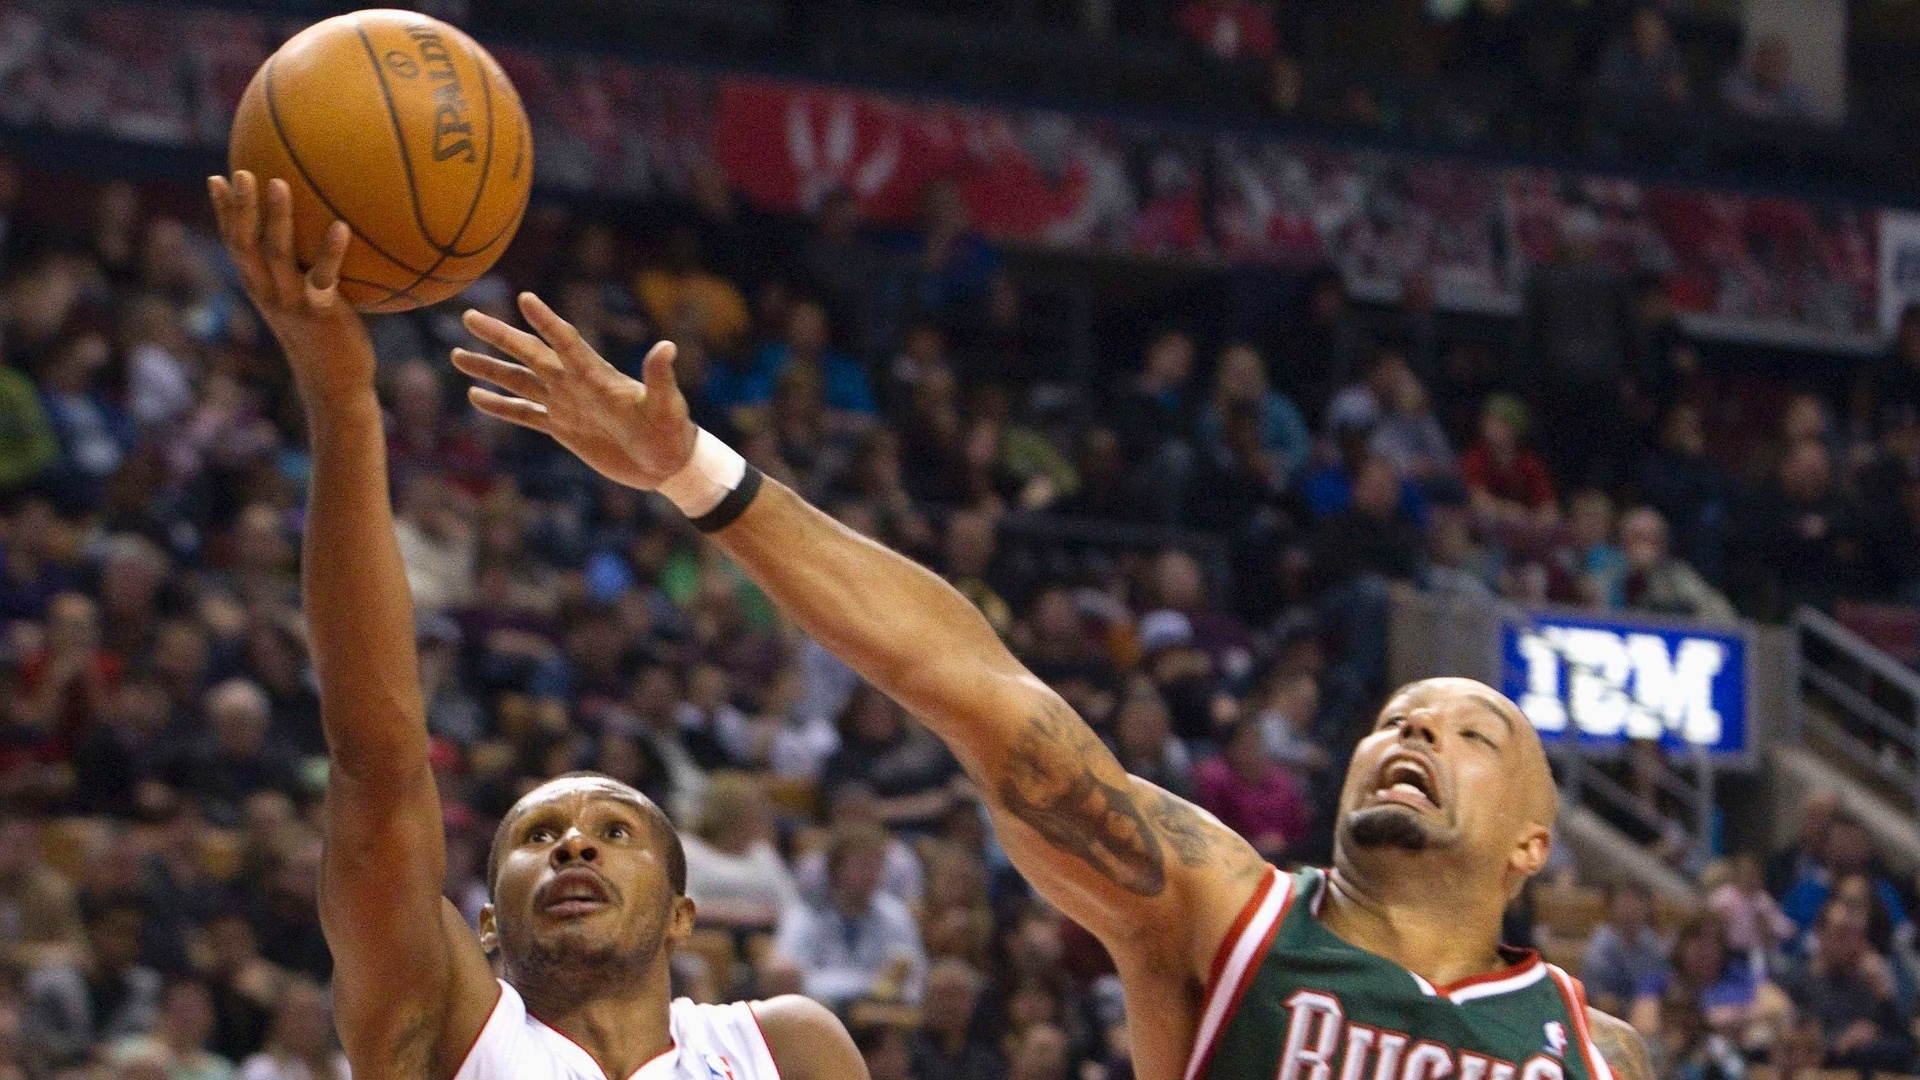 Milwaukee Bucks, de Drew Gooden, levou a melhor sobre Leandrinho, do Toronto Raptors